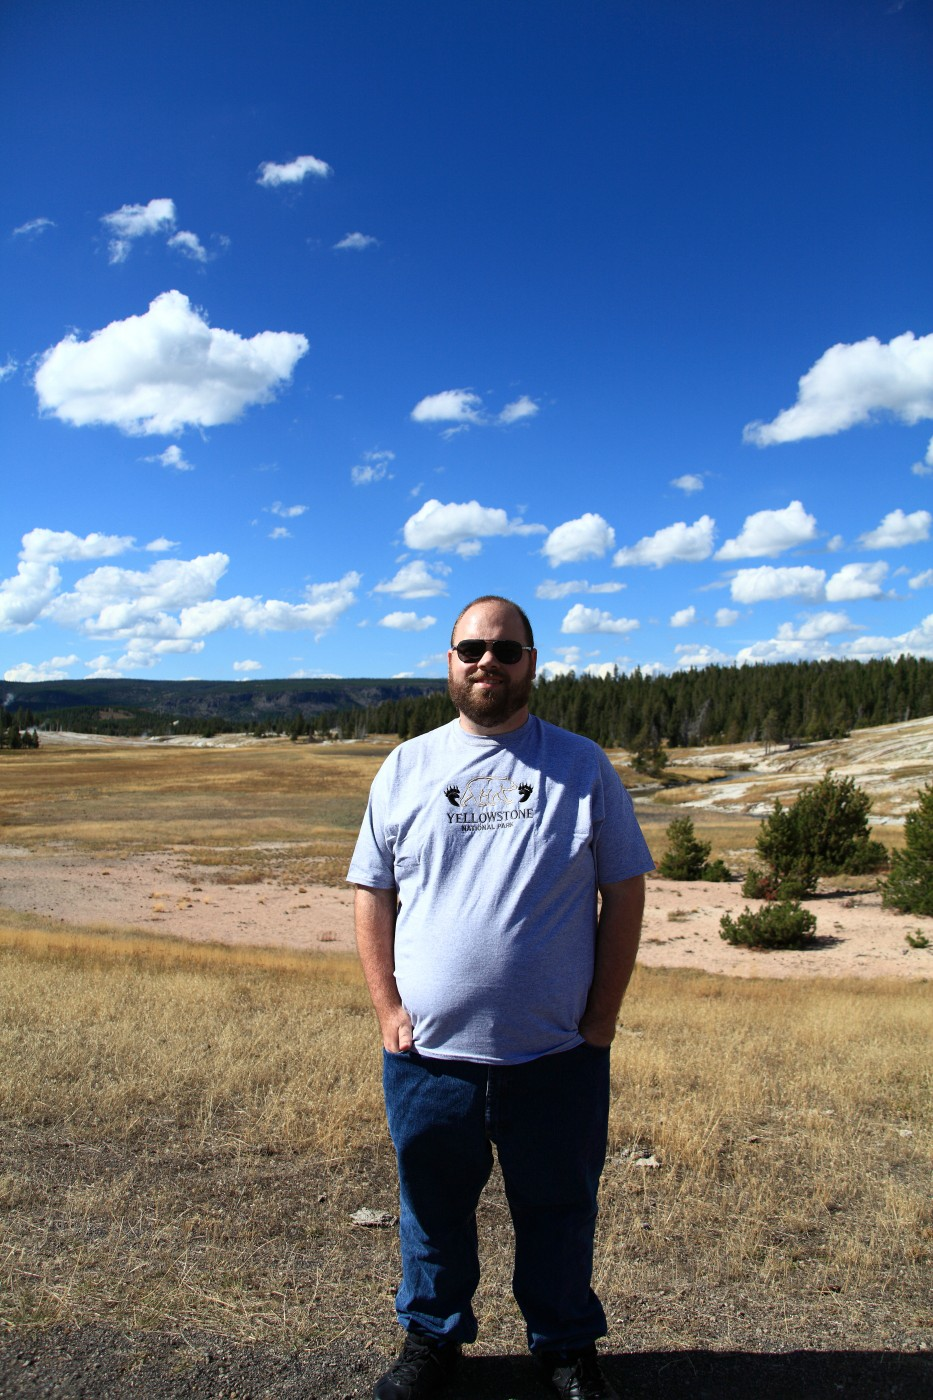 me at yellowstone national park author szulecki j joshua